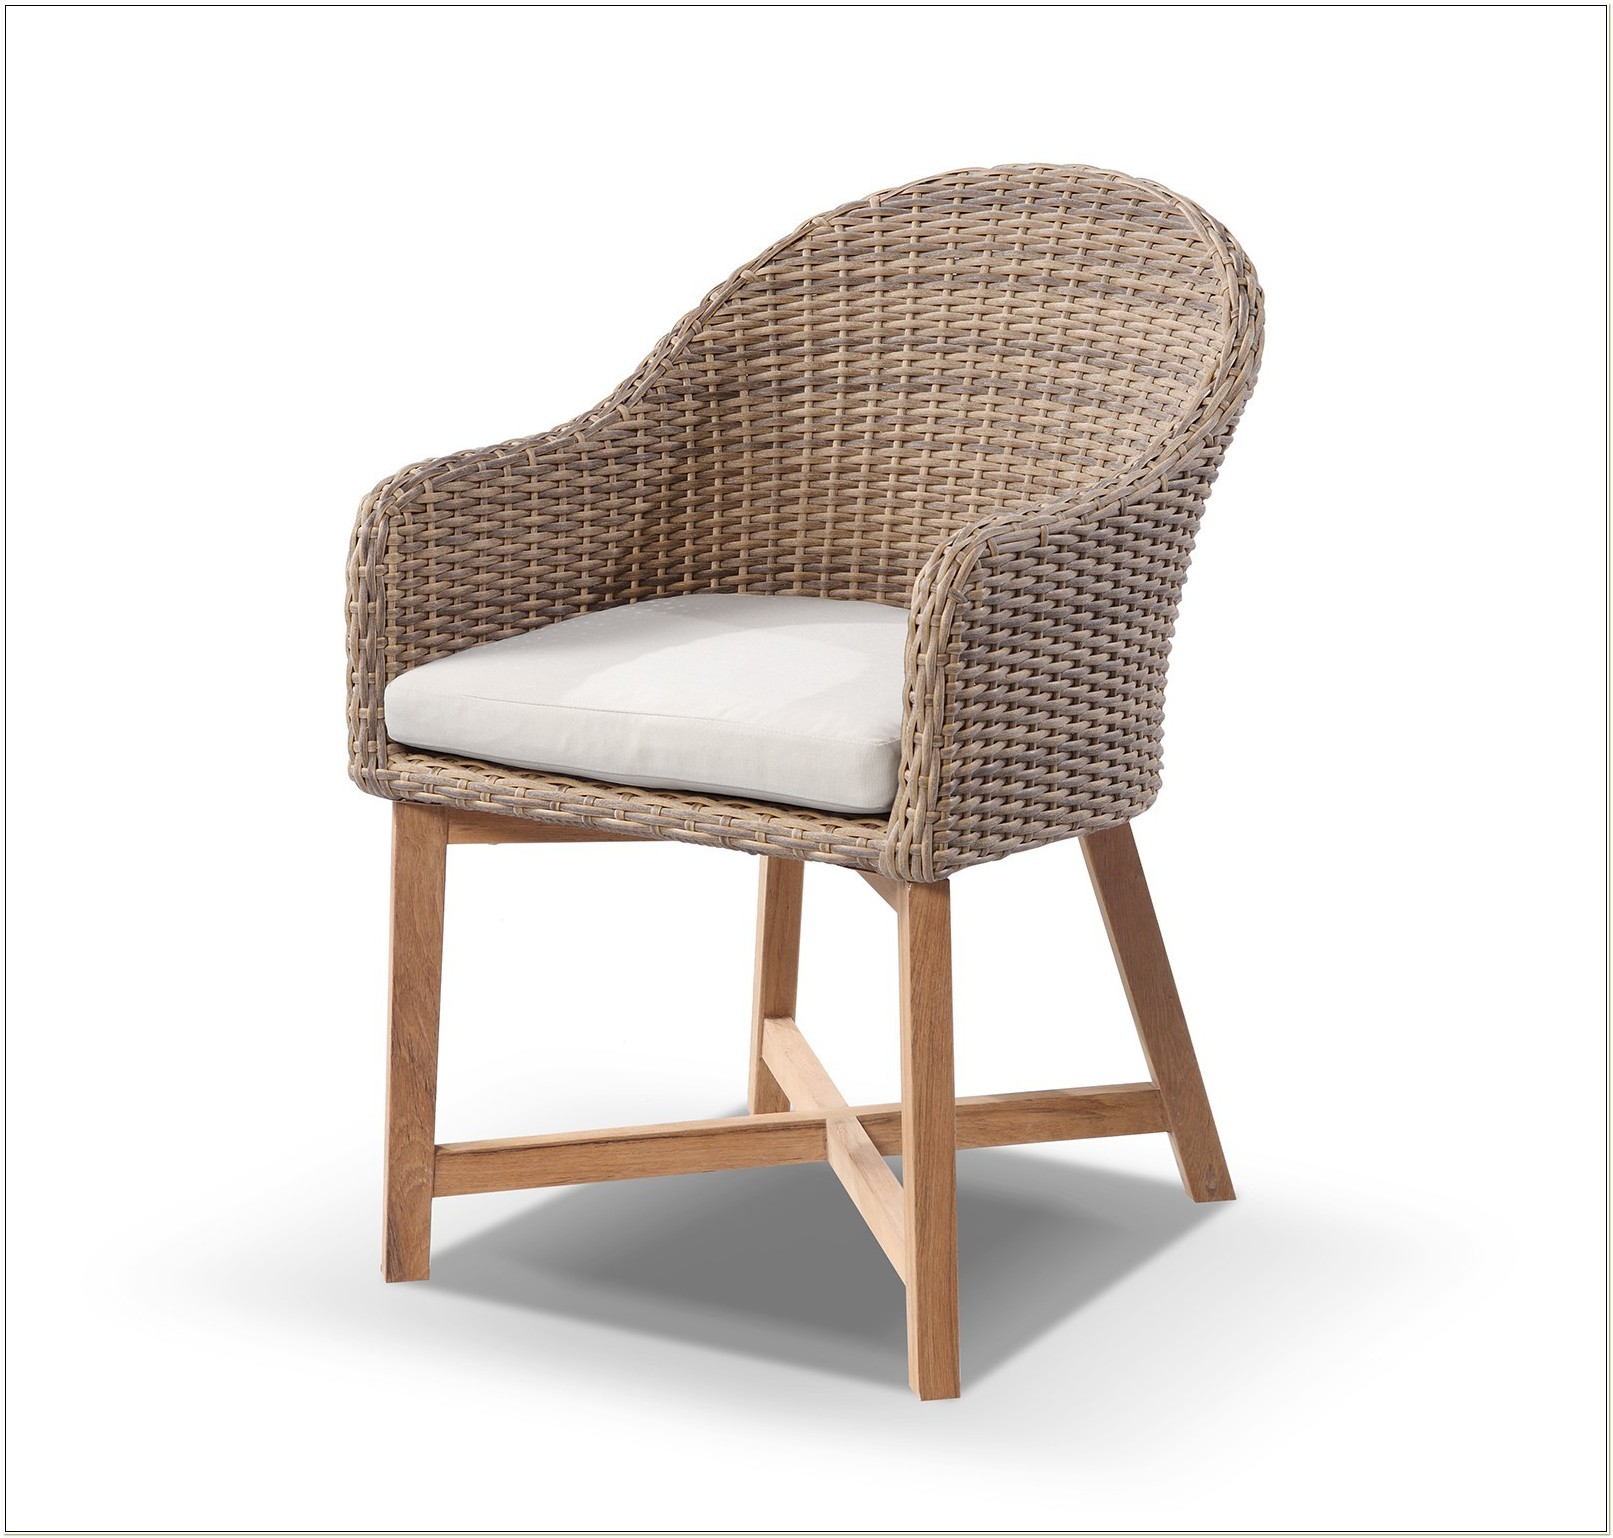 Wicker Outdoor Dining Chairs Melbourne